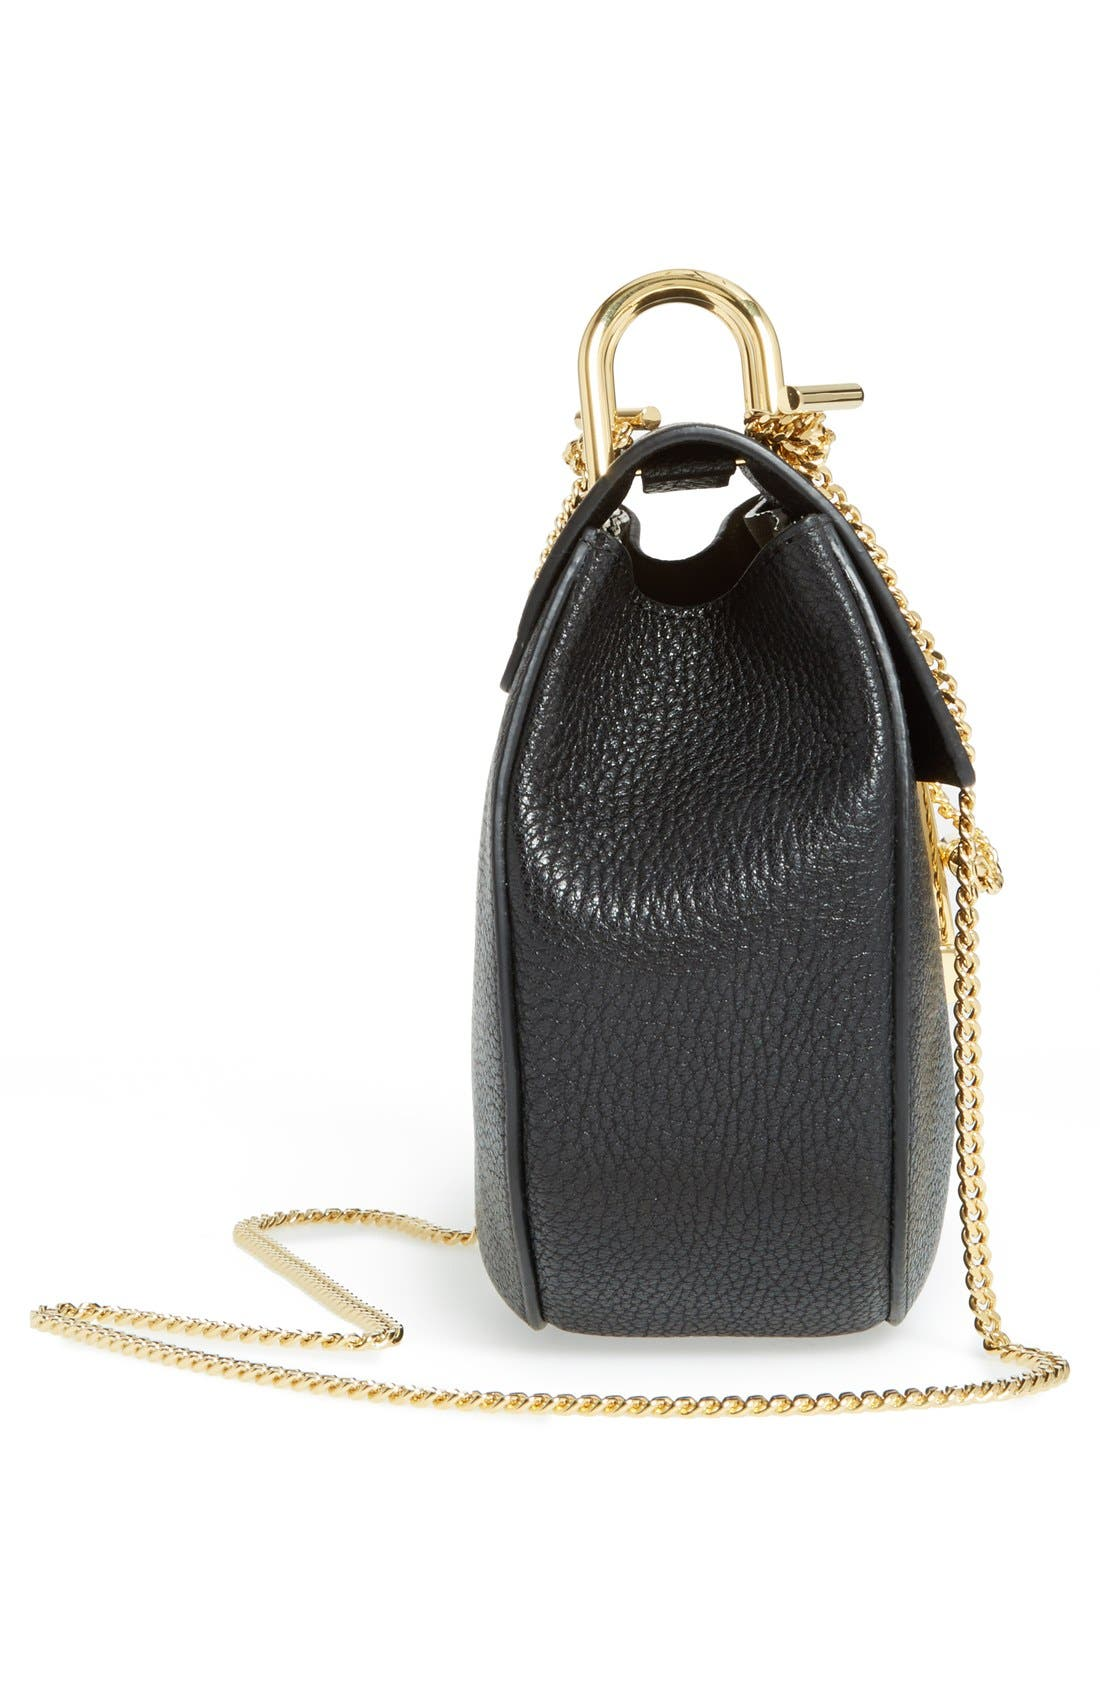 Drew Leather Shoulder Bag,                             Alternate thumbnail 4, color,                             BLACK GOLD HRDWRE